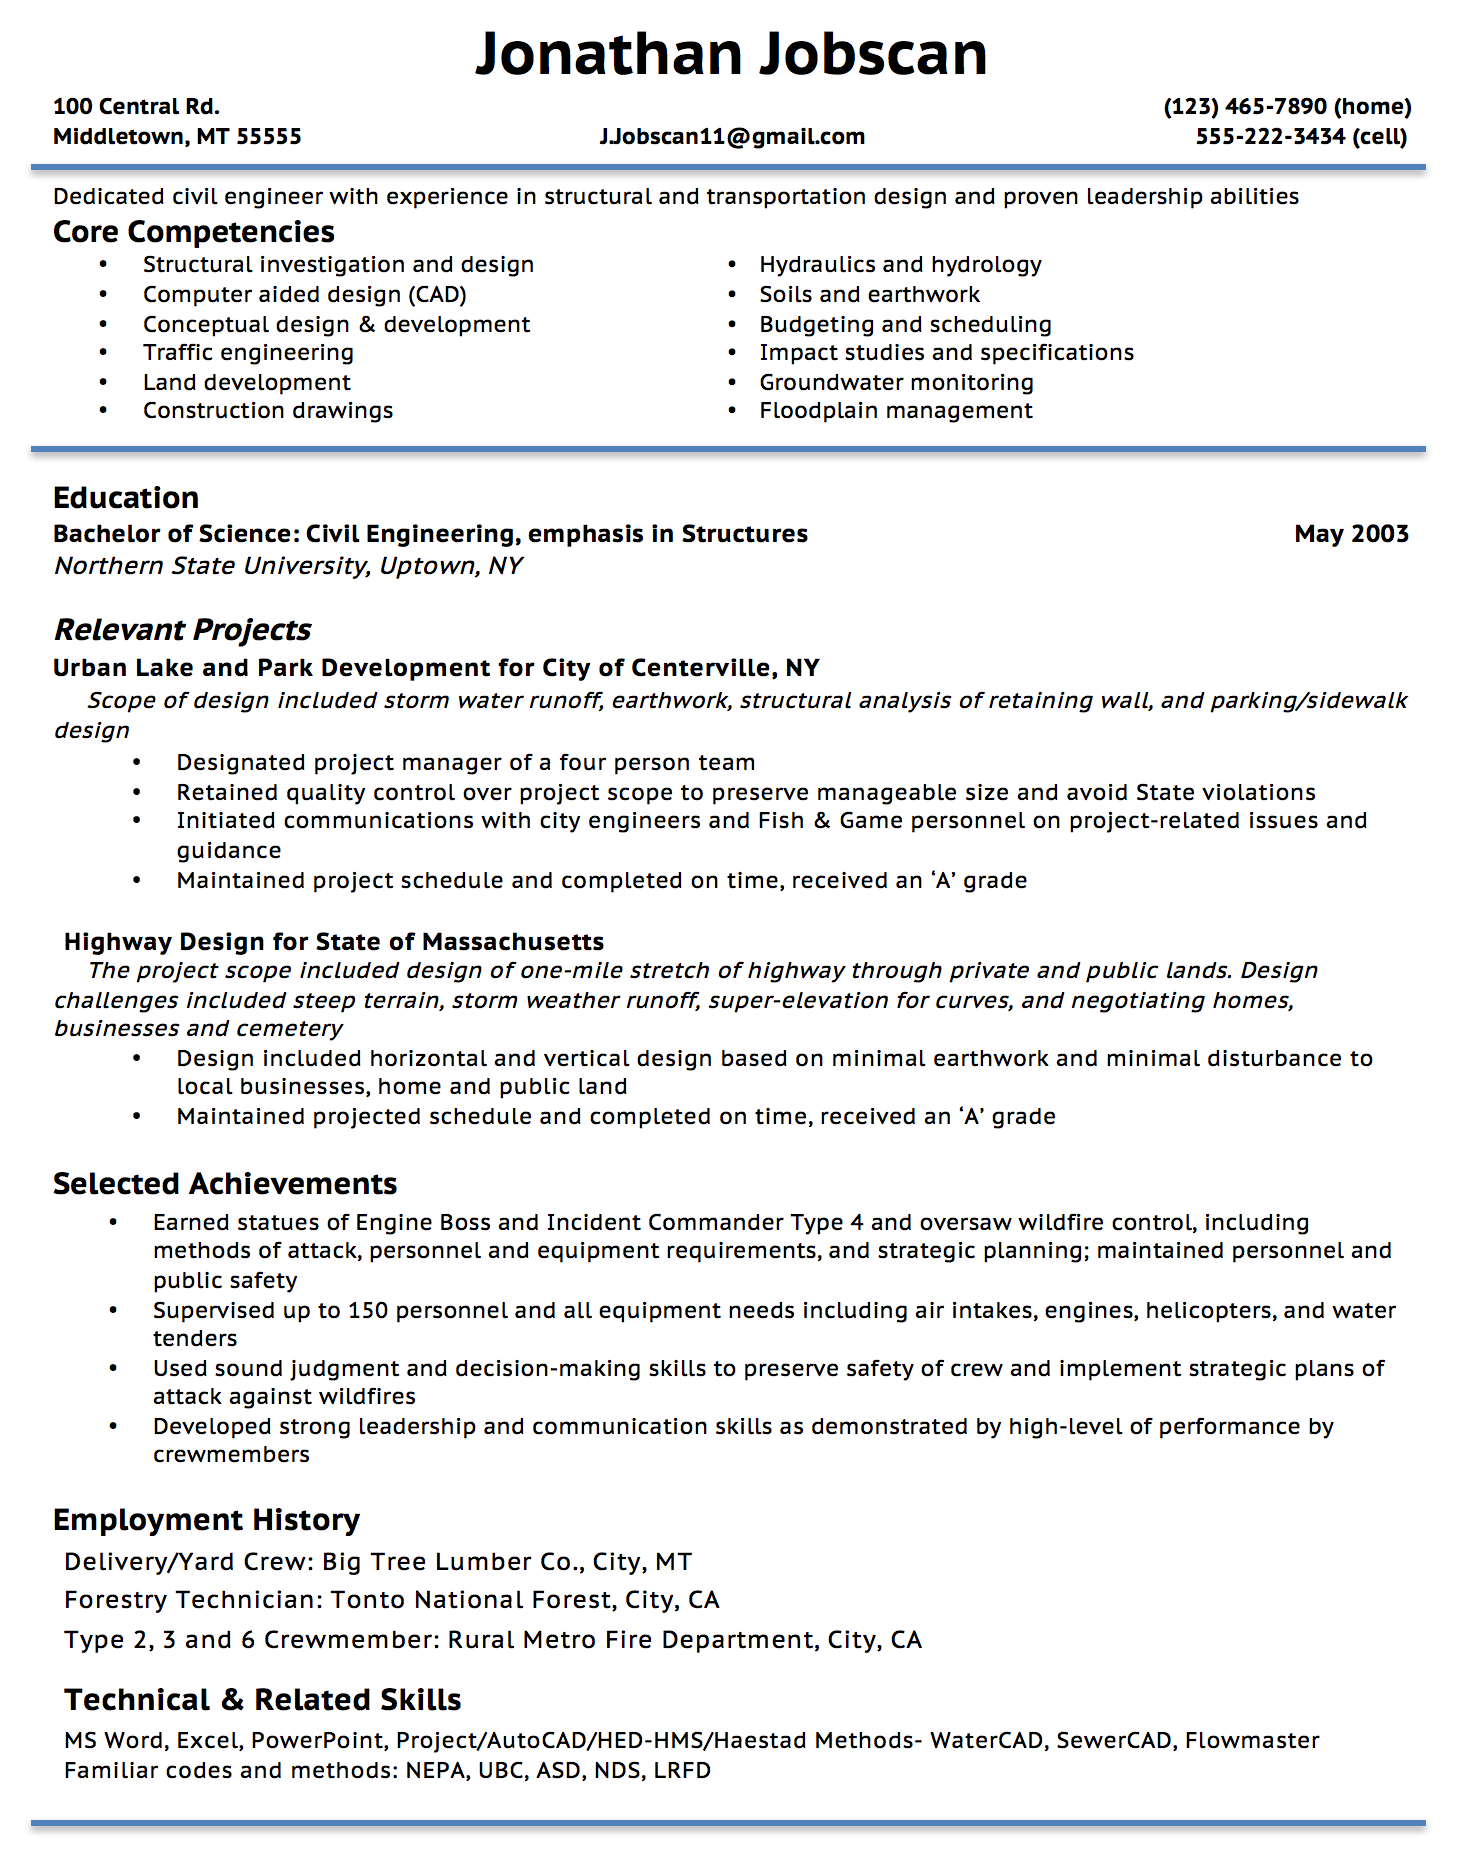 Picnictoimpeachus  Marvelous Resume Writing Guide  Jobscan With Heavenly Example Of A Functional Resume Format With Amazing Resume For Scholarship Also Medical Technologist Resume In Addition Do You Put References On A Resume And Cover Letter Format For Resume As Well As Cashier Duties Resume Additionally Things To Put On Resume From Jobscanco With Picnictoimpeachus  Heavenly Resume Writing Guide  Jobscan With Amazing Example Of A Functional Resume Format And Marvelous Resume For Scholarship Also Medical Technologist Resume In Addition Do You Put References On A Resume From Jobscanco